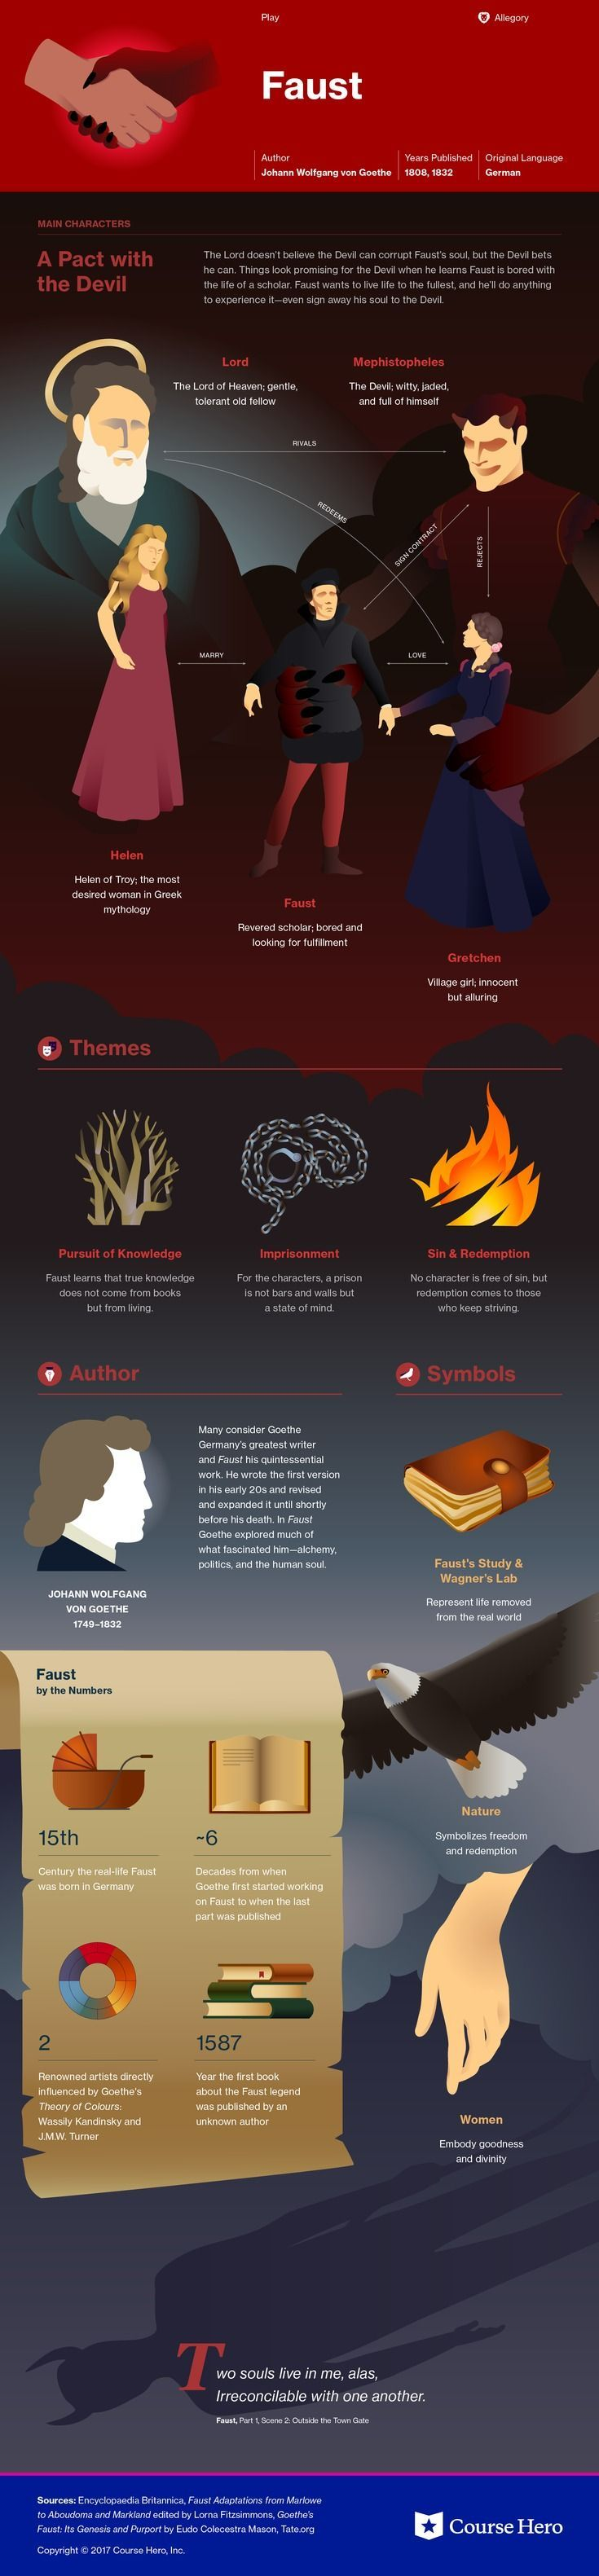 This @CourseHero infographic on Faust (Parts 1 and 2) is both visually stunning and informative!